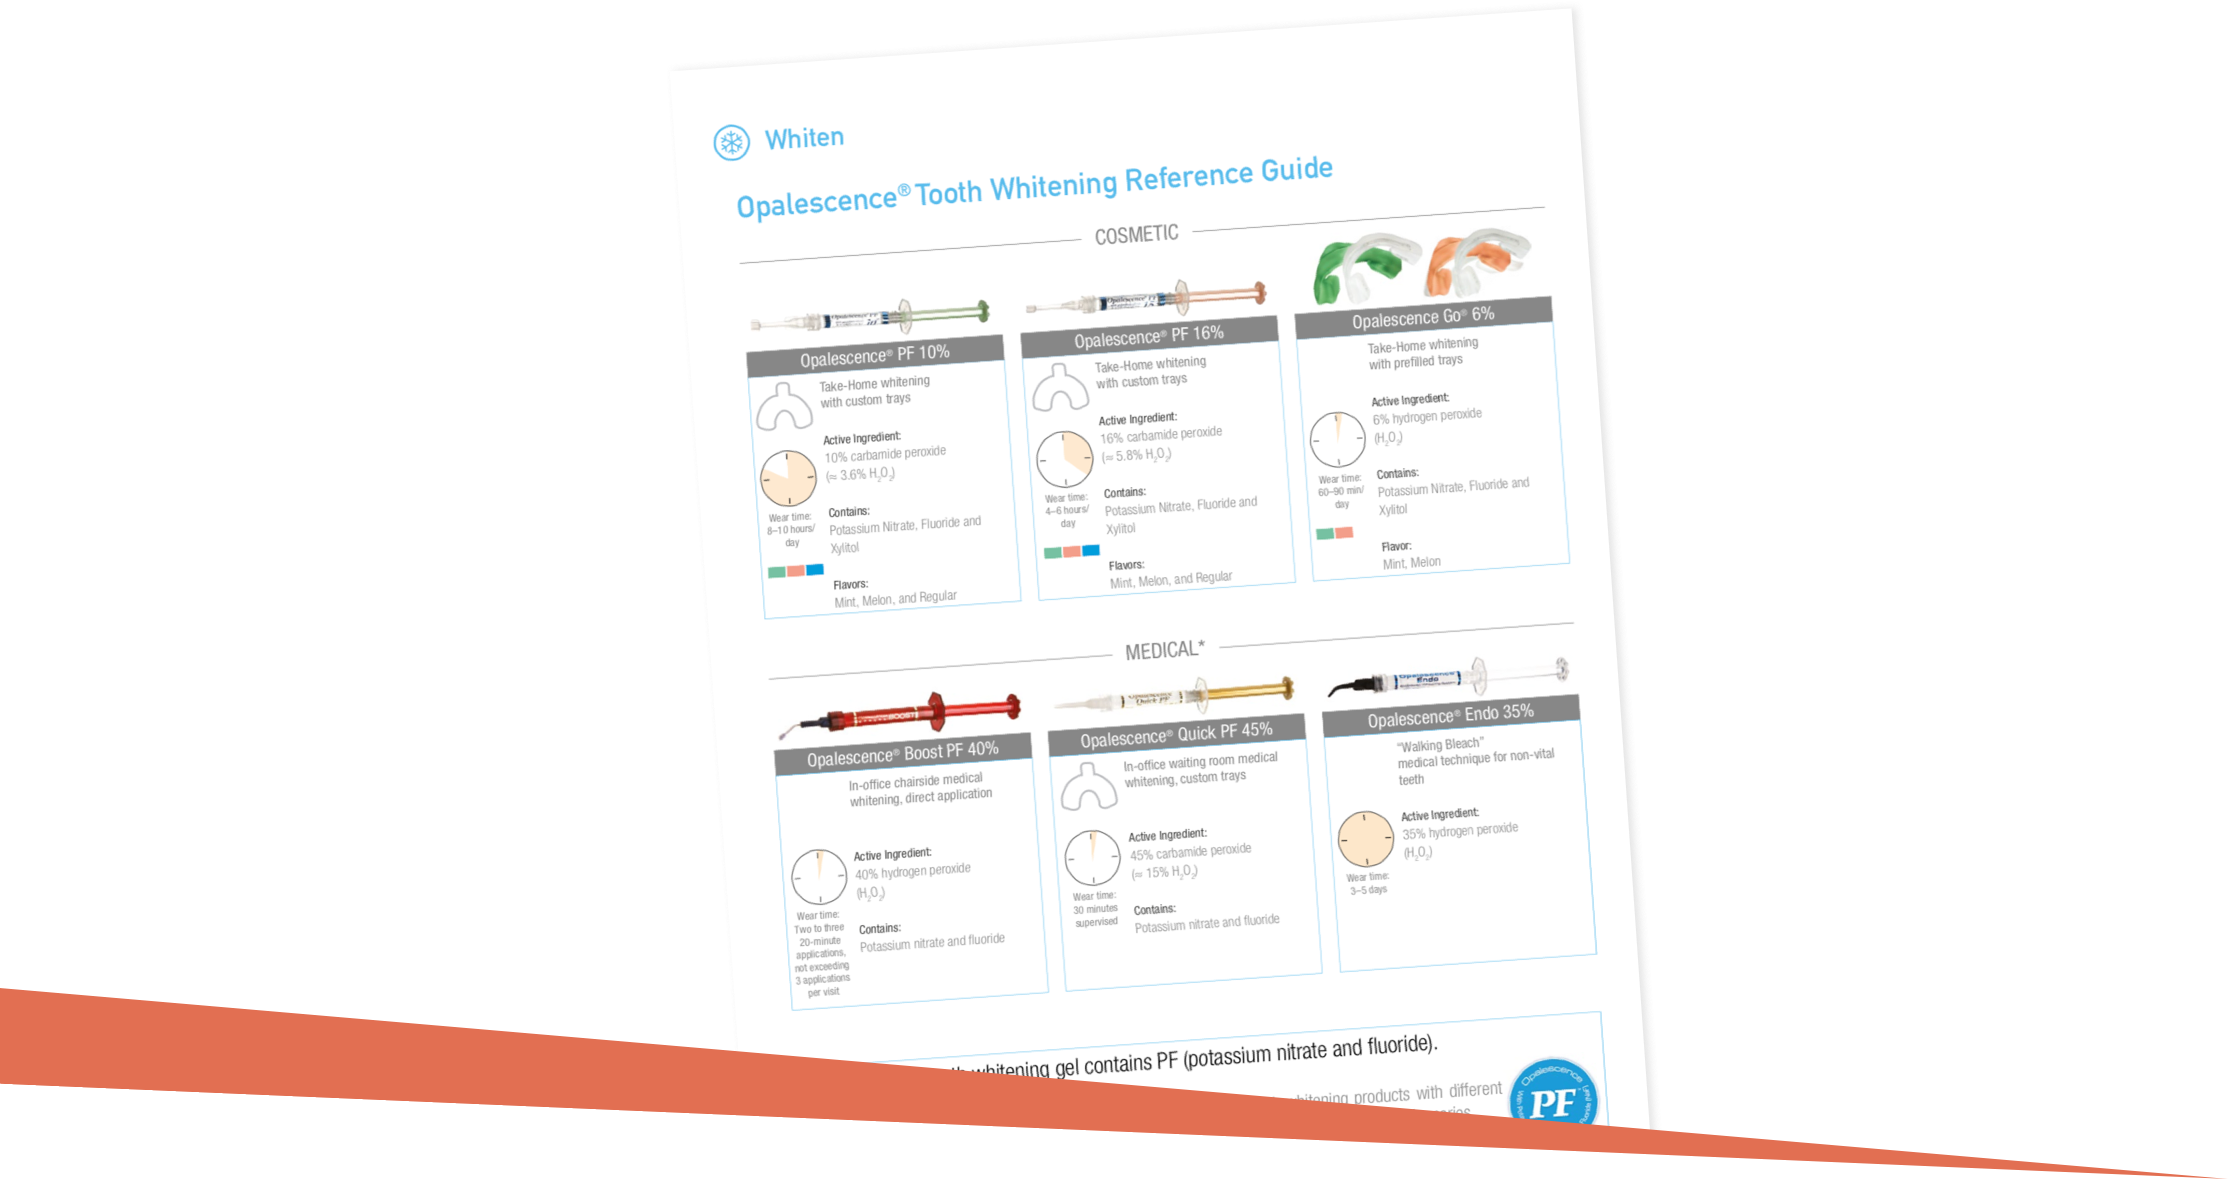 Opalescence Tooth Whitening Reference Guide